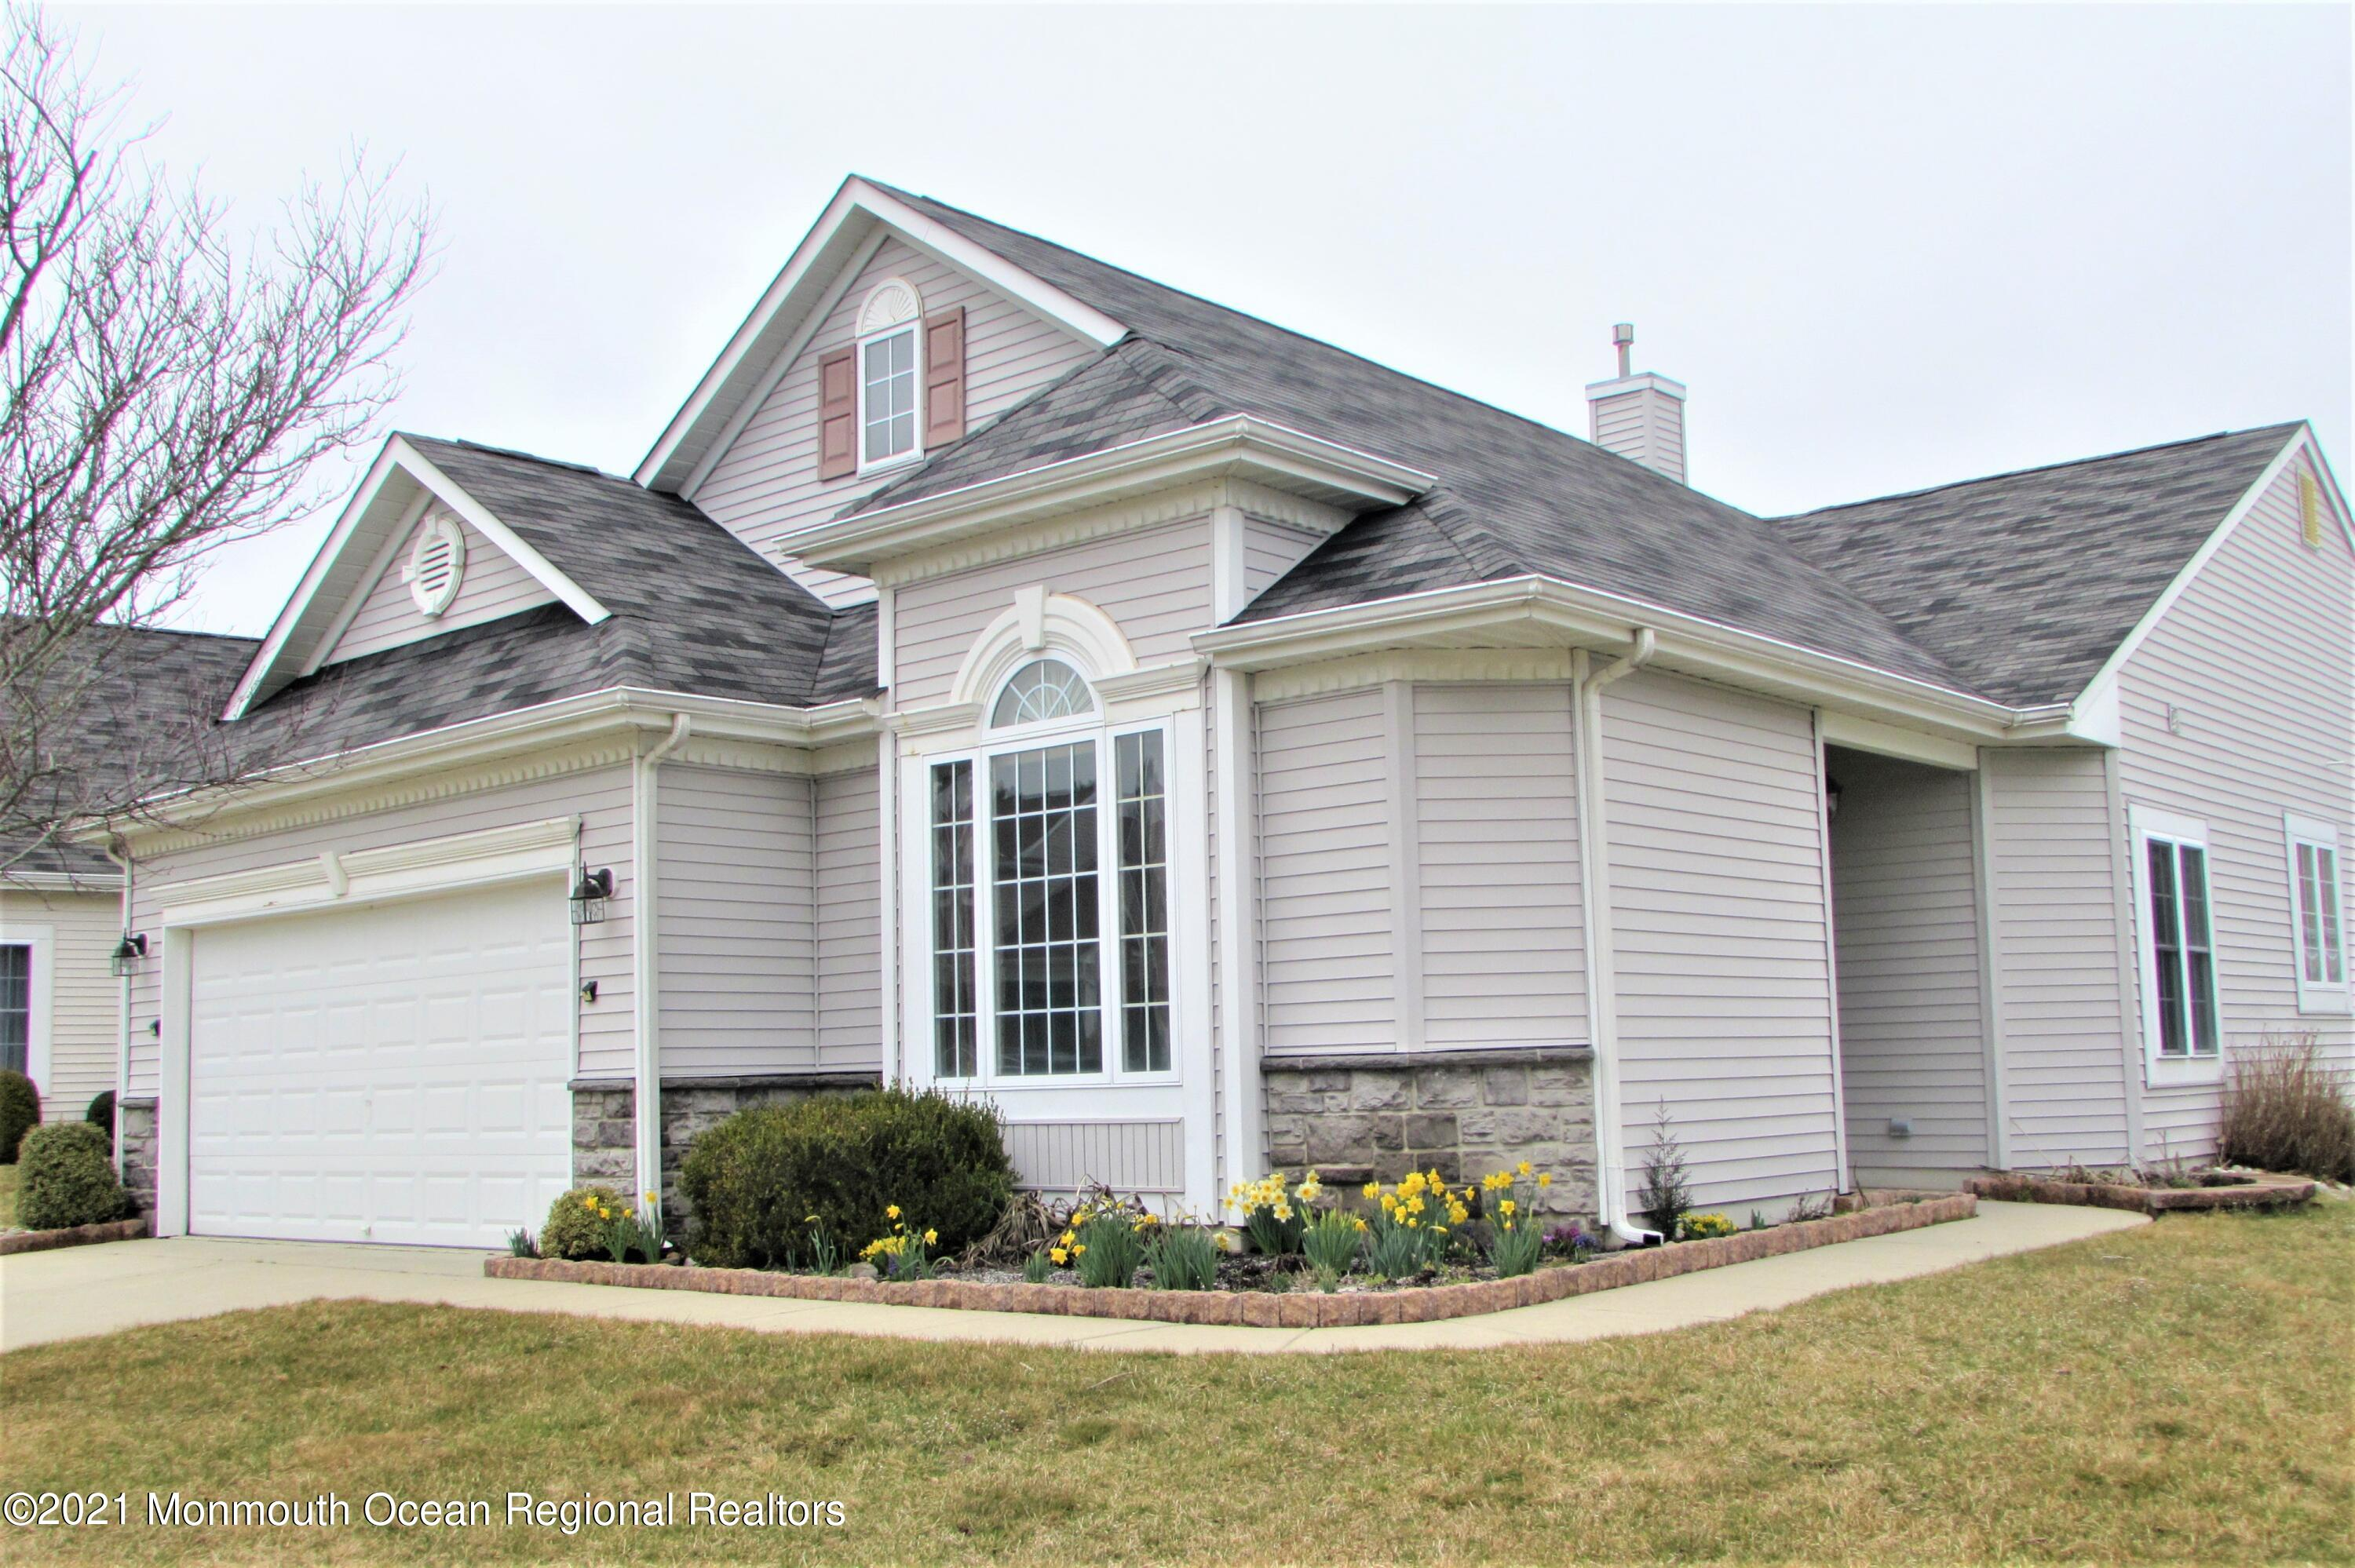 2 bedroom Augusta located in Greenbriar Oceanaire Golf and Country Club. Resort style living. Indoor and Outdoor Pool, 38,000 Square foot club house, bar, restaurant, fitness center. Golf Tennis, Bocce and Pickleball.  This home features a covered patio and a  large screened in patio. Please follow NJ state Covid Guidelines. Release must be signed.